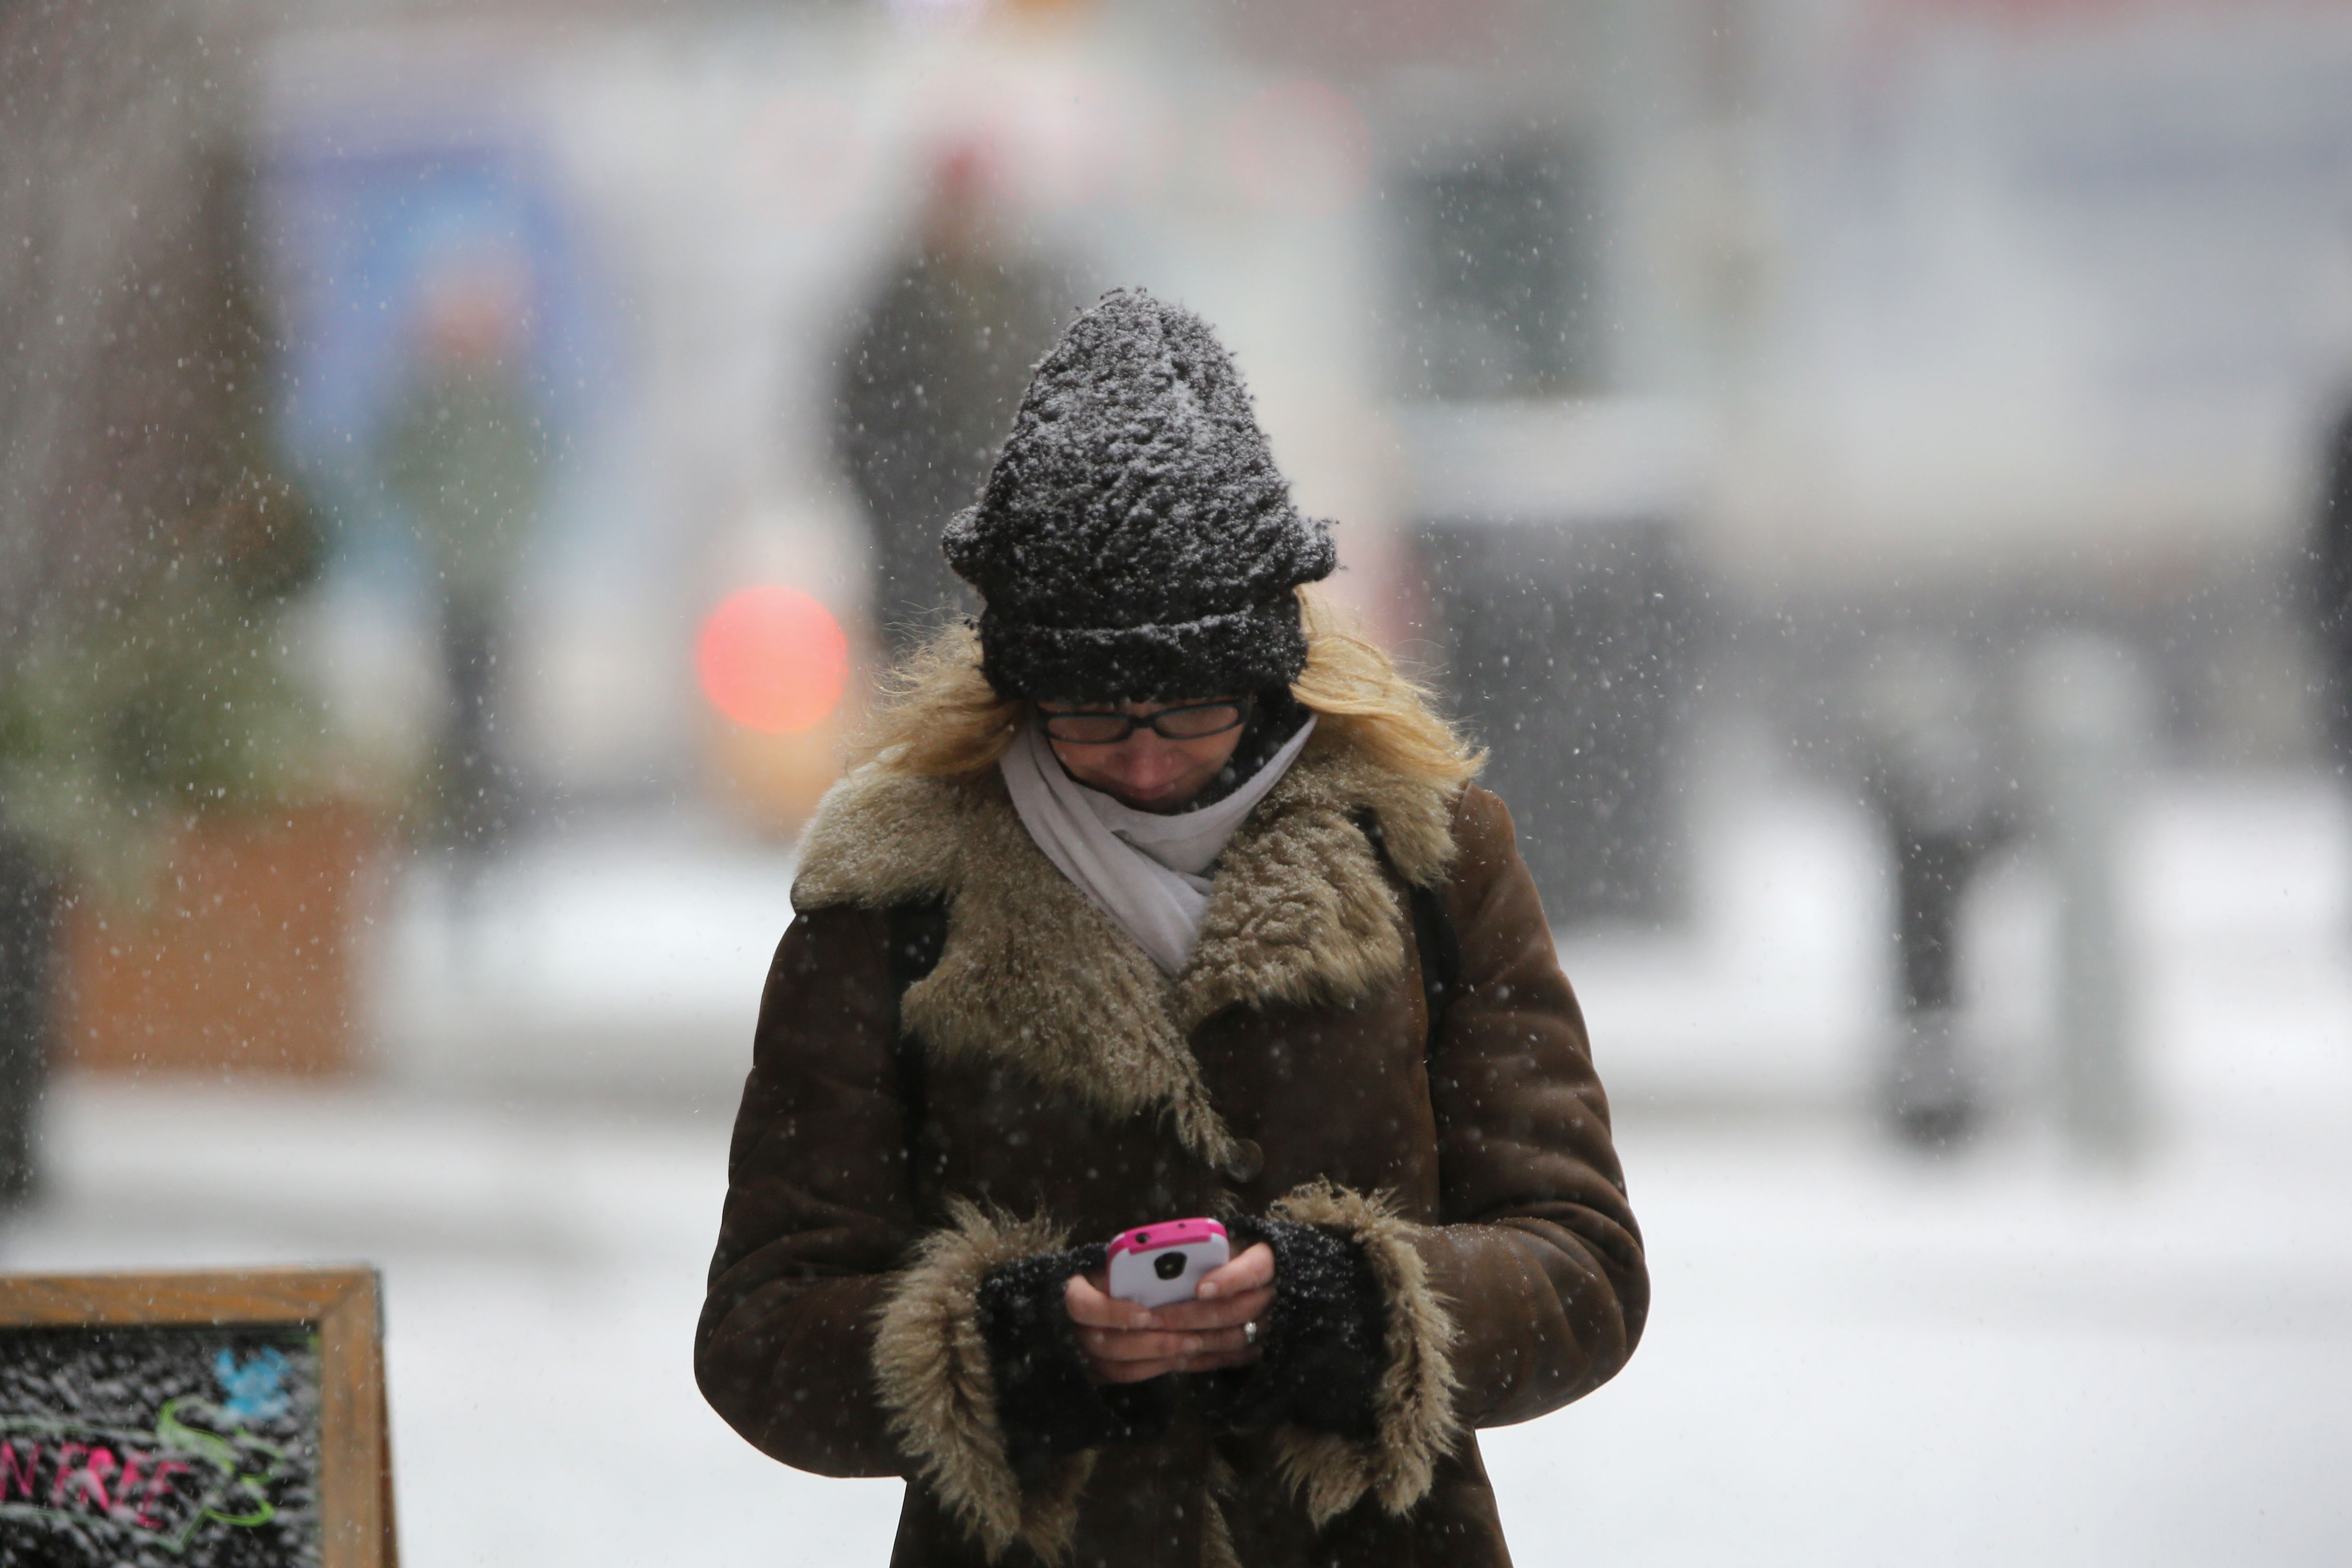 Cold Weather Can Mess With Your Phone. Here's How to Protect It